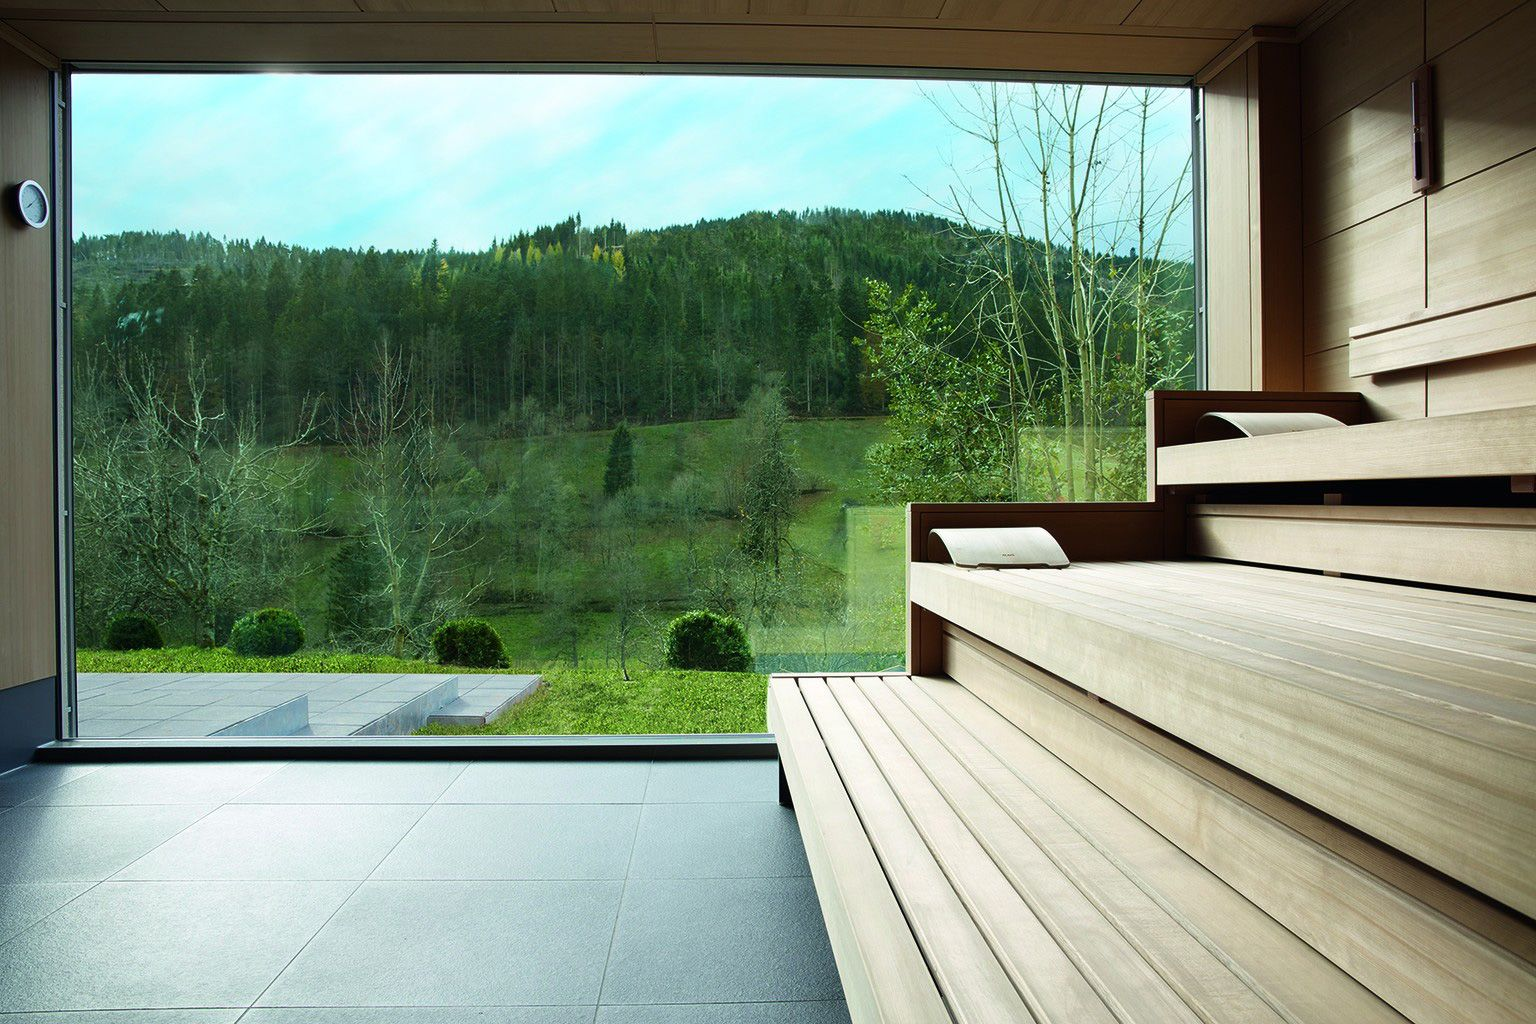 best spas in germany known for hot springs nudity. Black Bedroom Furniture Sets. Home Design Ideas